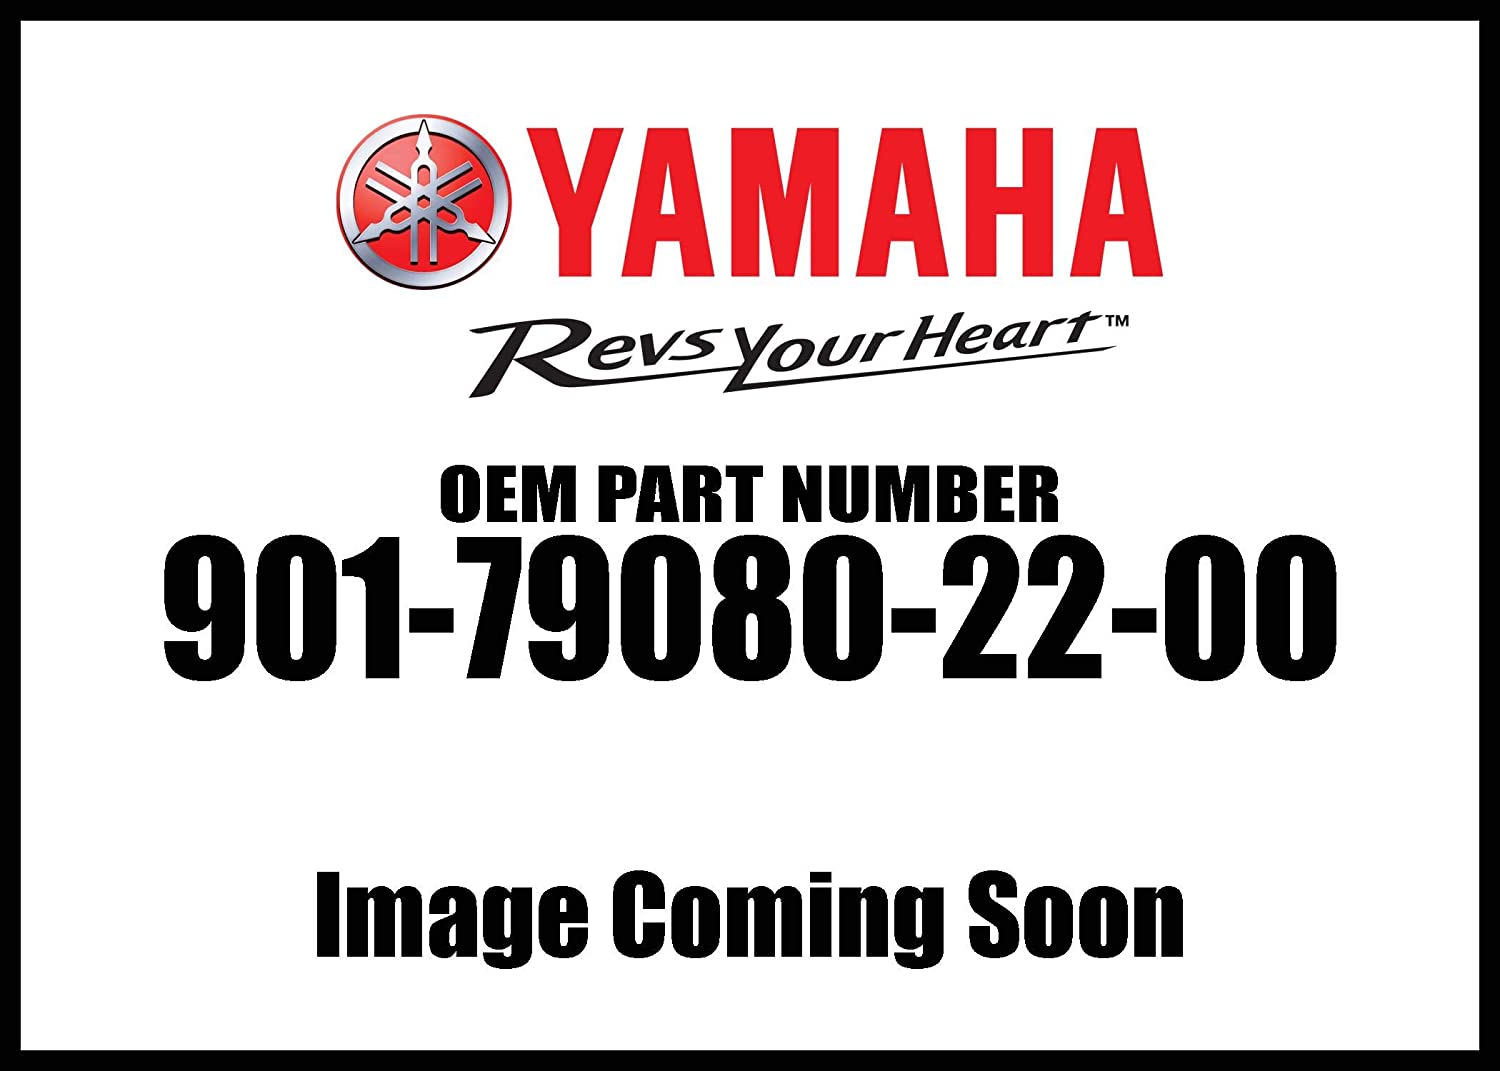 Yamaha 90179-08022-00 Nut; 901790802200 Made by Yamaha